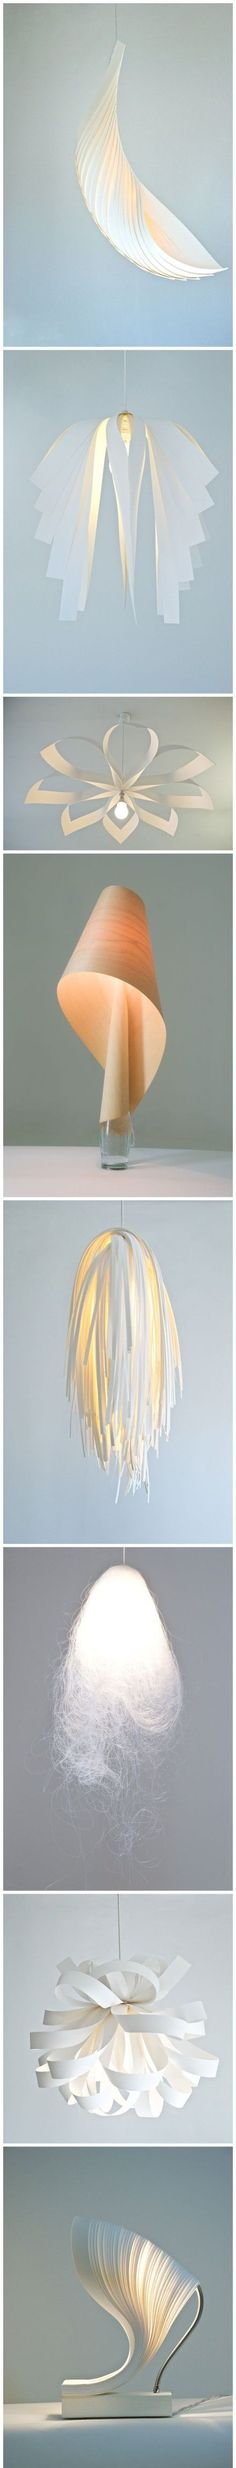 Amazed by the beauty of these limited edition paper lamp, designed by 7gods (n° 2 + 3 ♥)